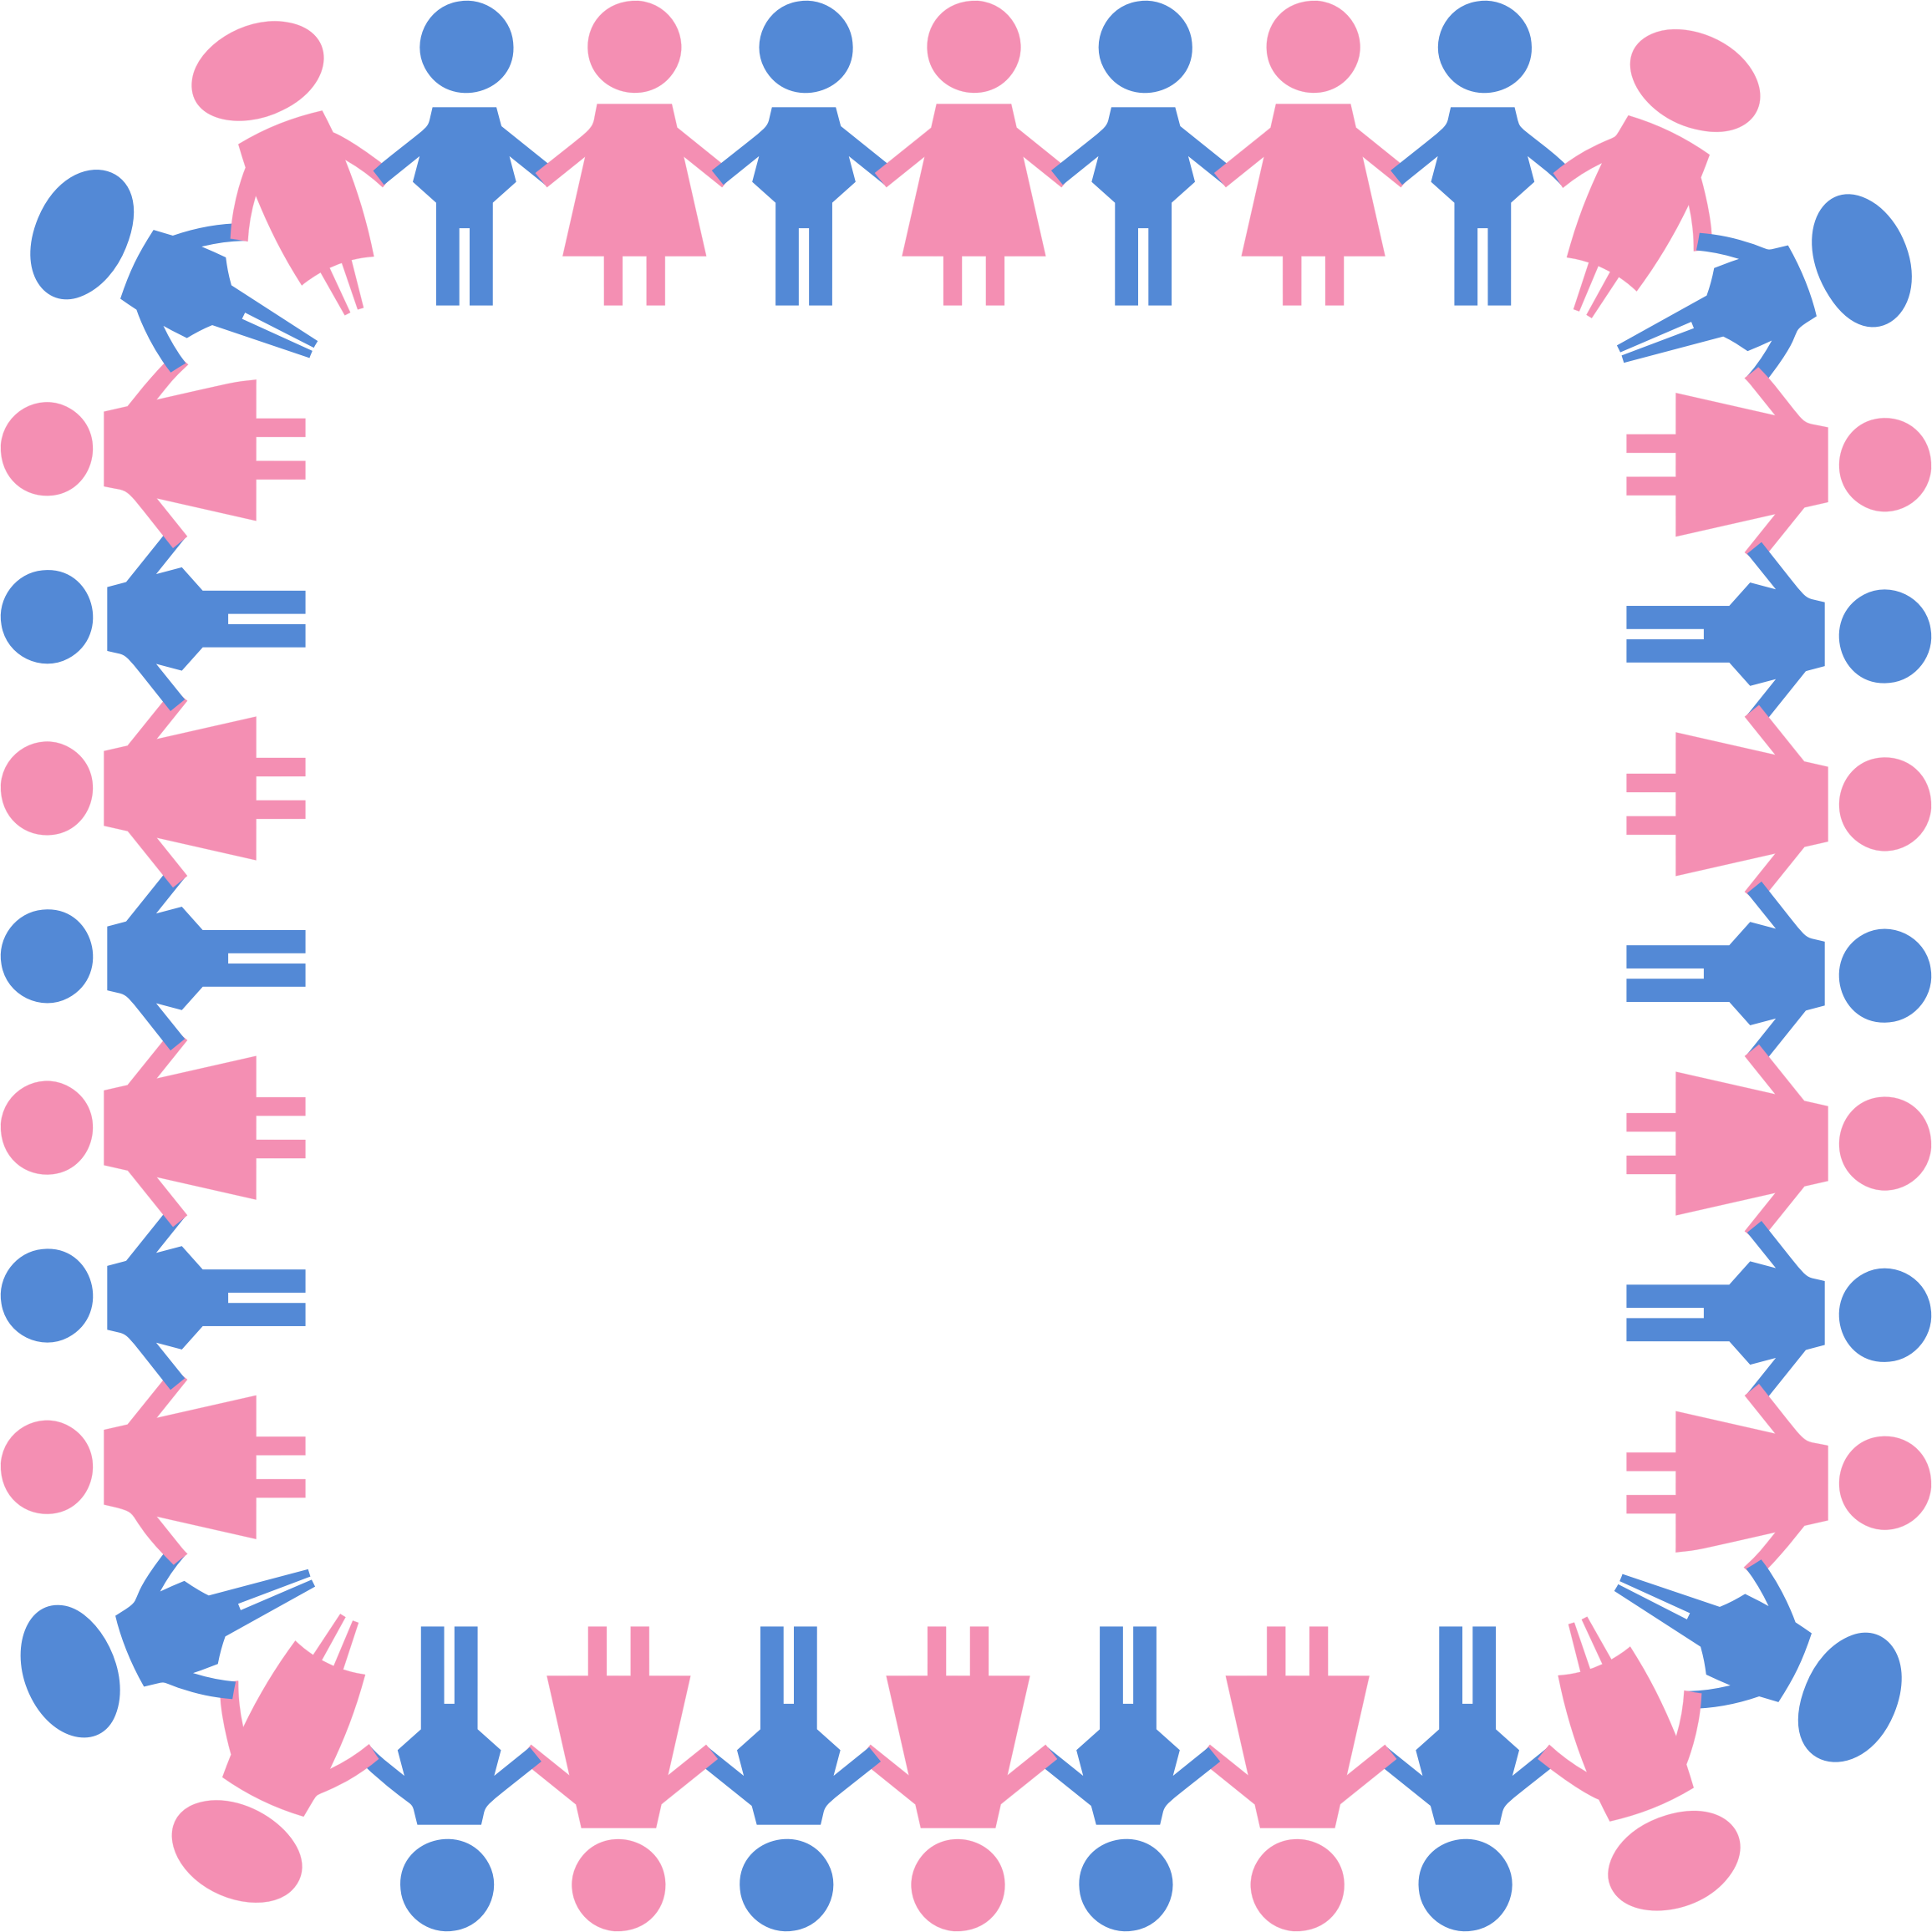 Square clipart large. Male and female symbols